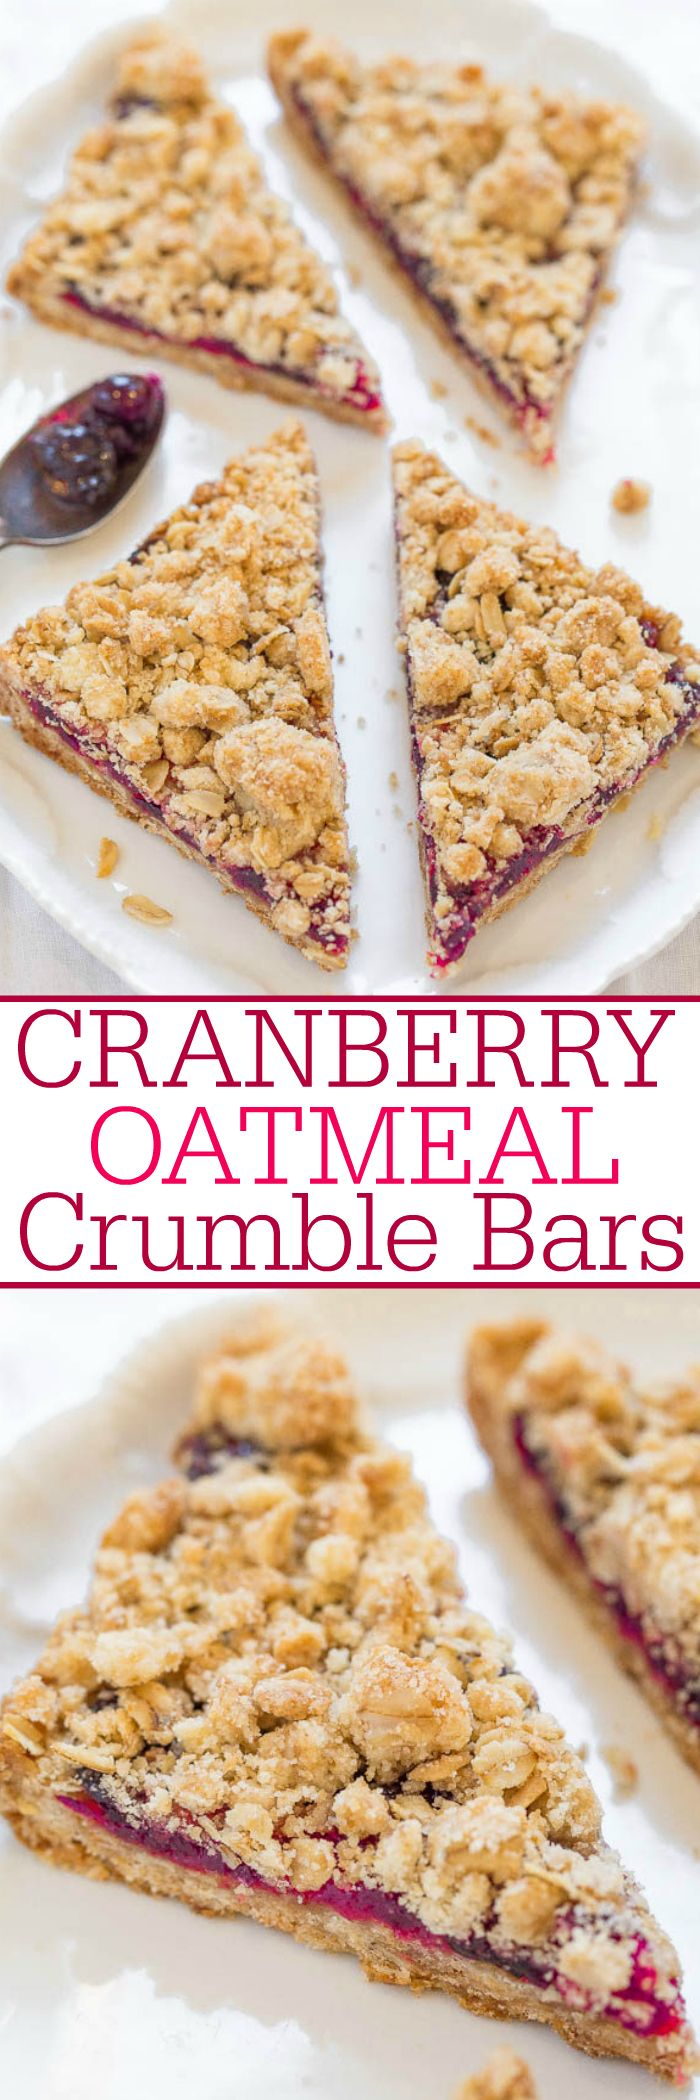 Cranberry Oatmeal Crumble Bars - Fast, easy, no mixer bars with juicy cranberries and big crumbles!! Perfect for breakfast, snacks, or dessert! Soft, chewy, hearty, and so good!!